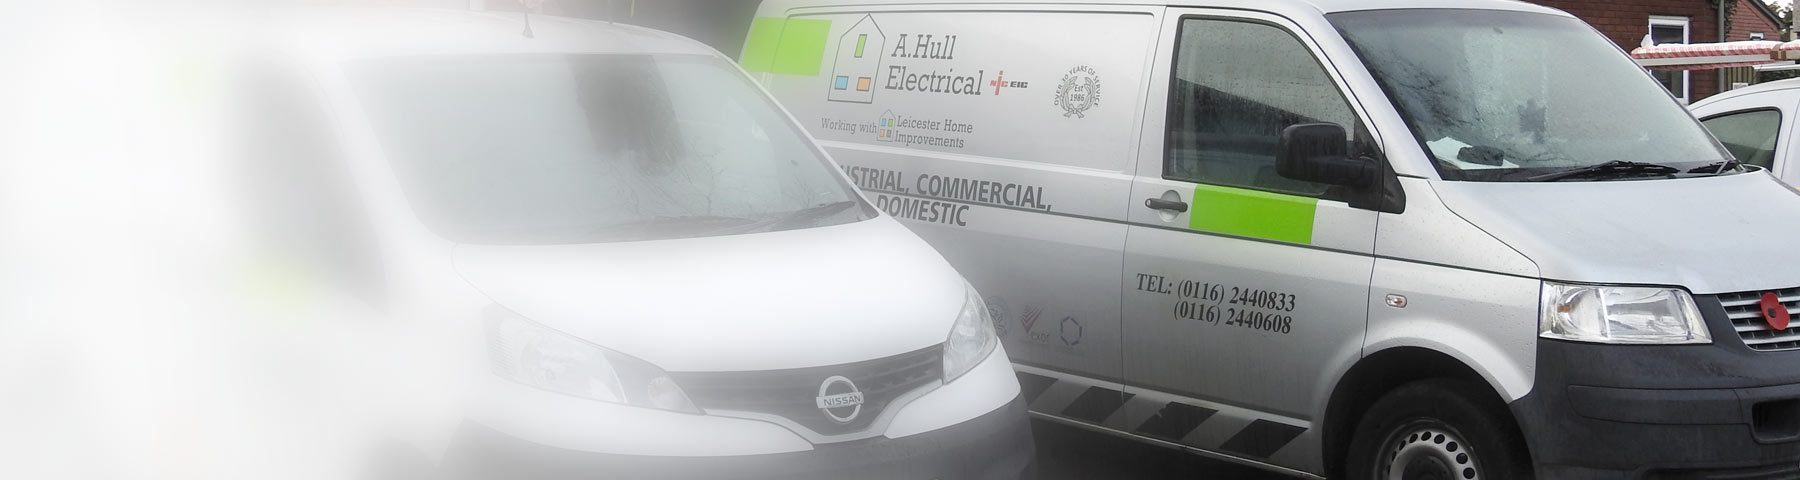 A. Hull Electrical Services